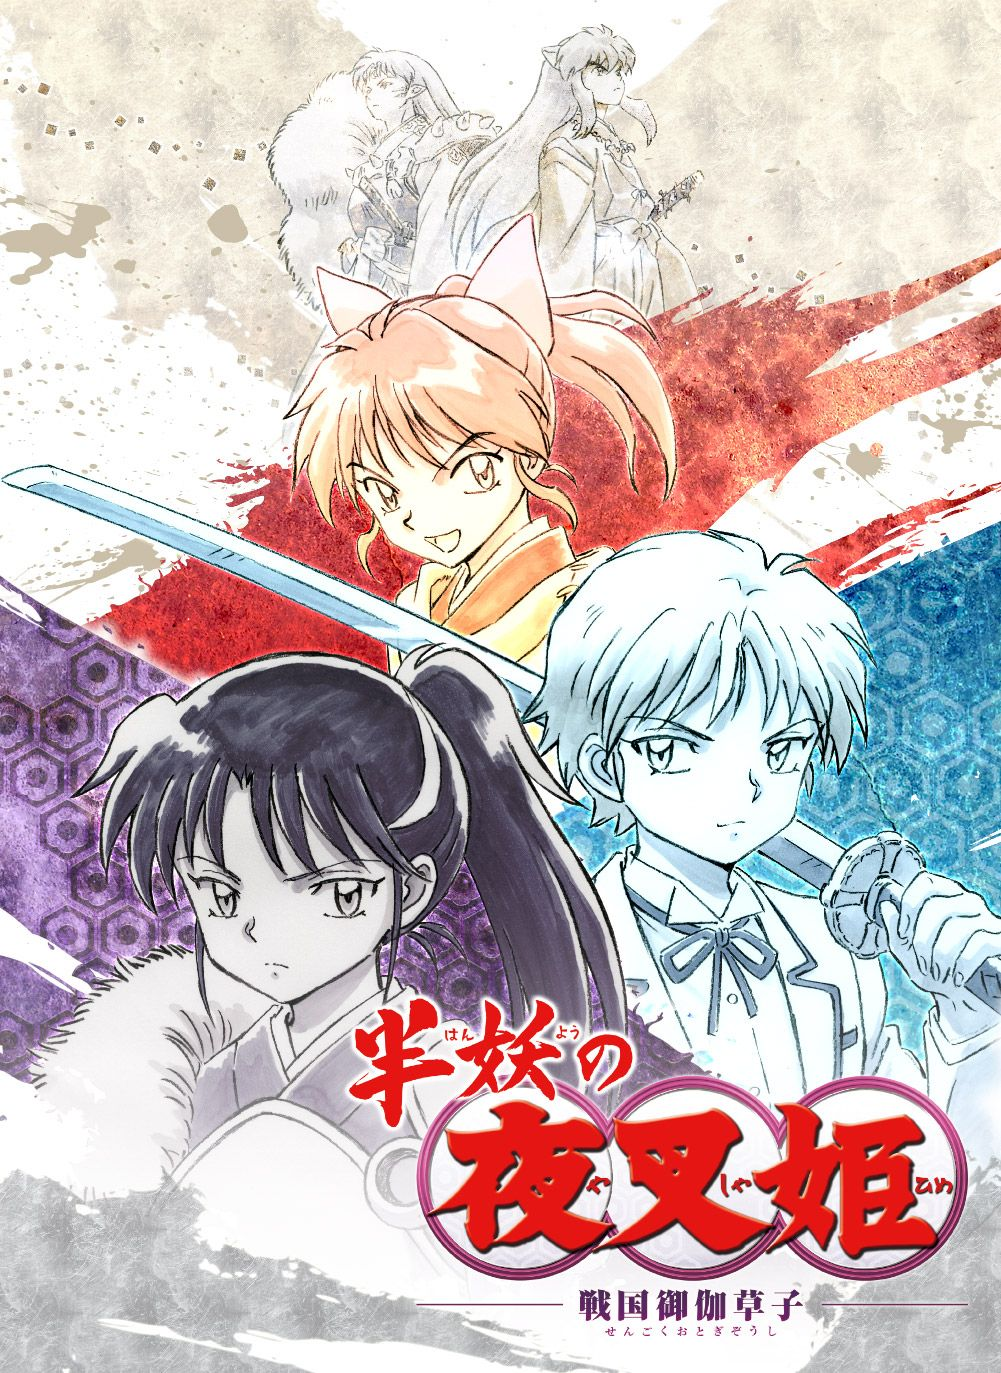 The new series focuses on half-demon twins Towa and Setsuna who are are separated from each other during a forest fire.